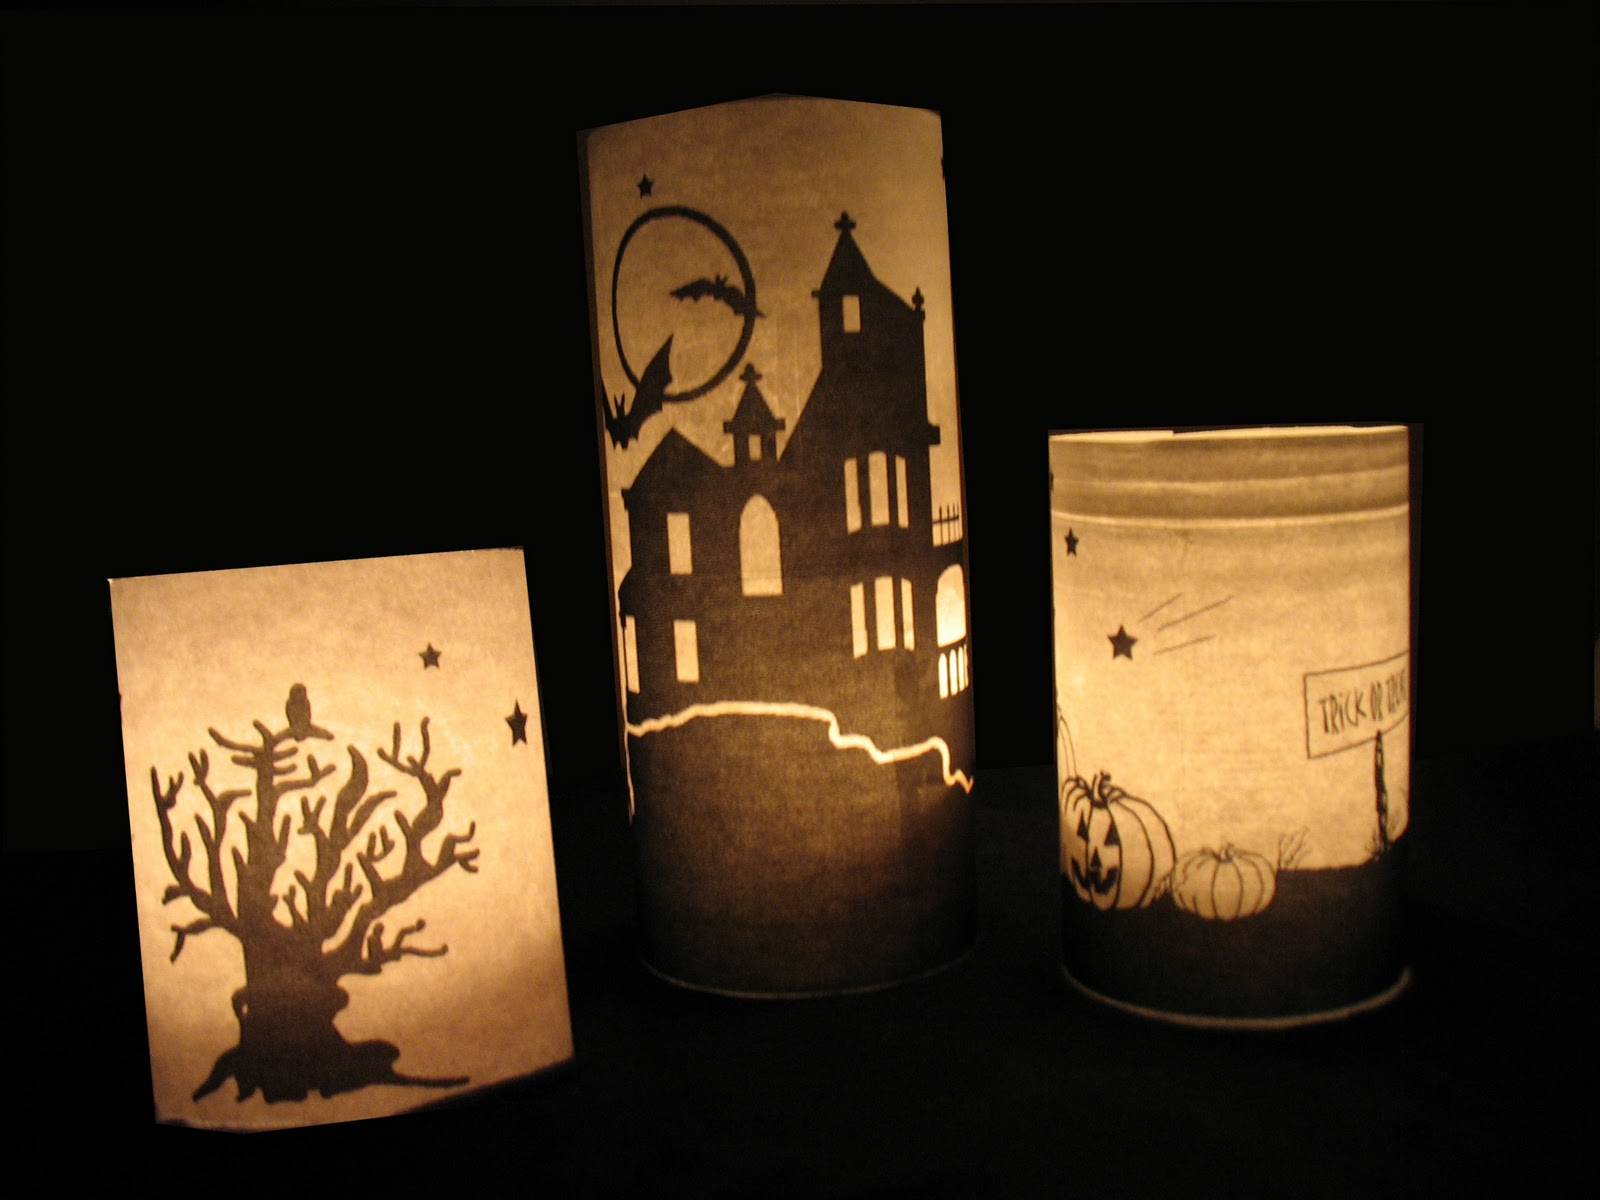 Pottery barn inspired luminaries get spooky 16 diy for Homemade luminaries